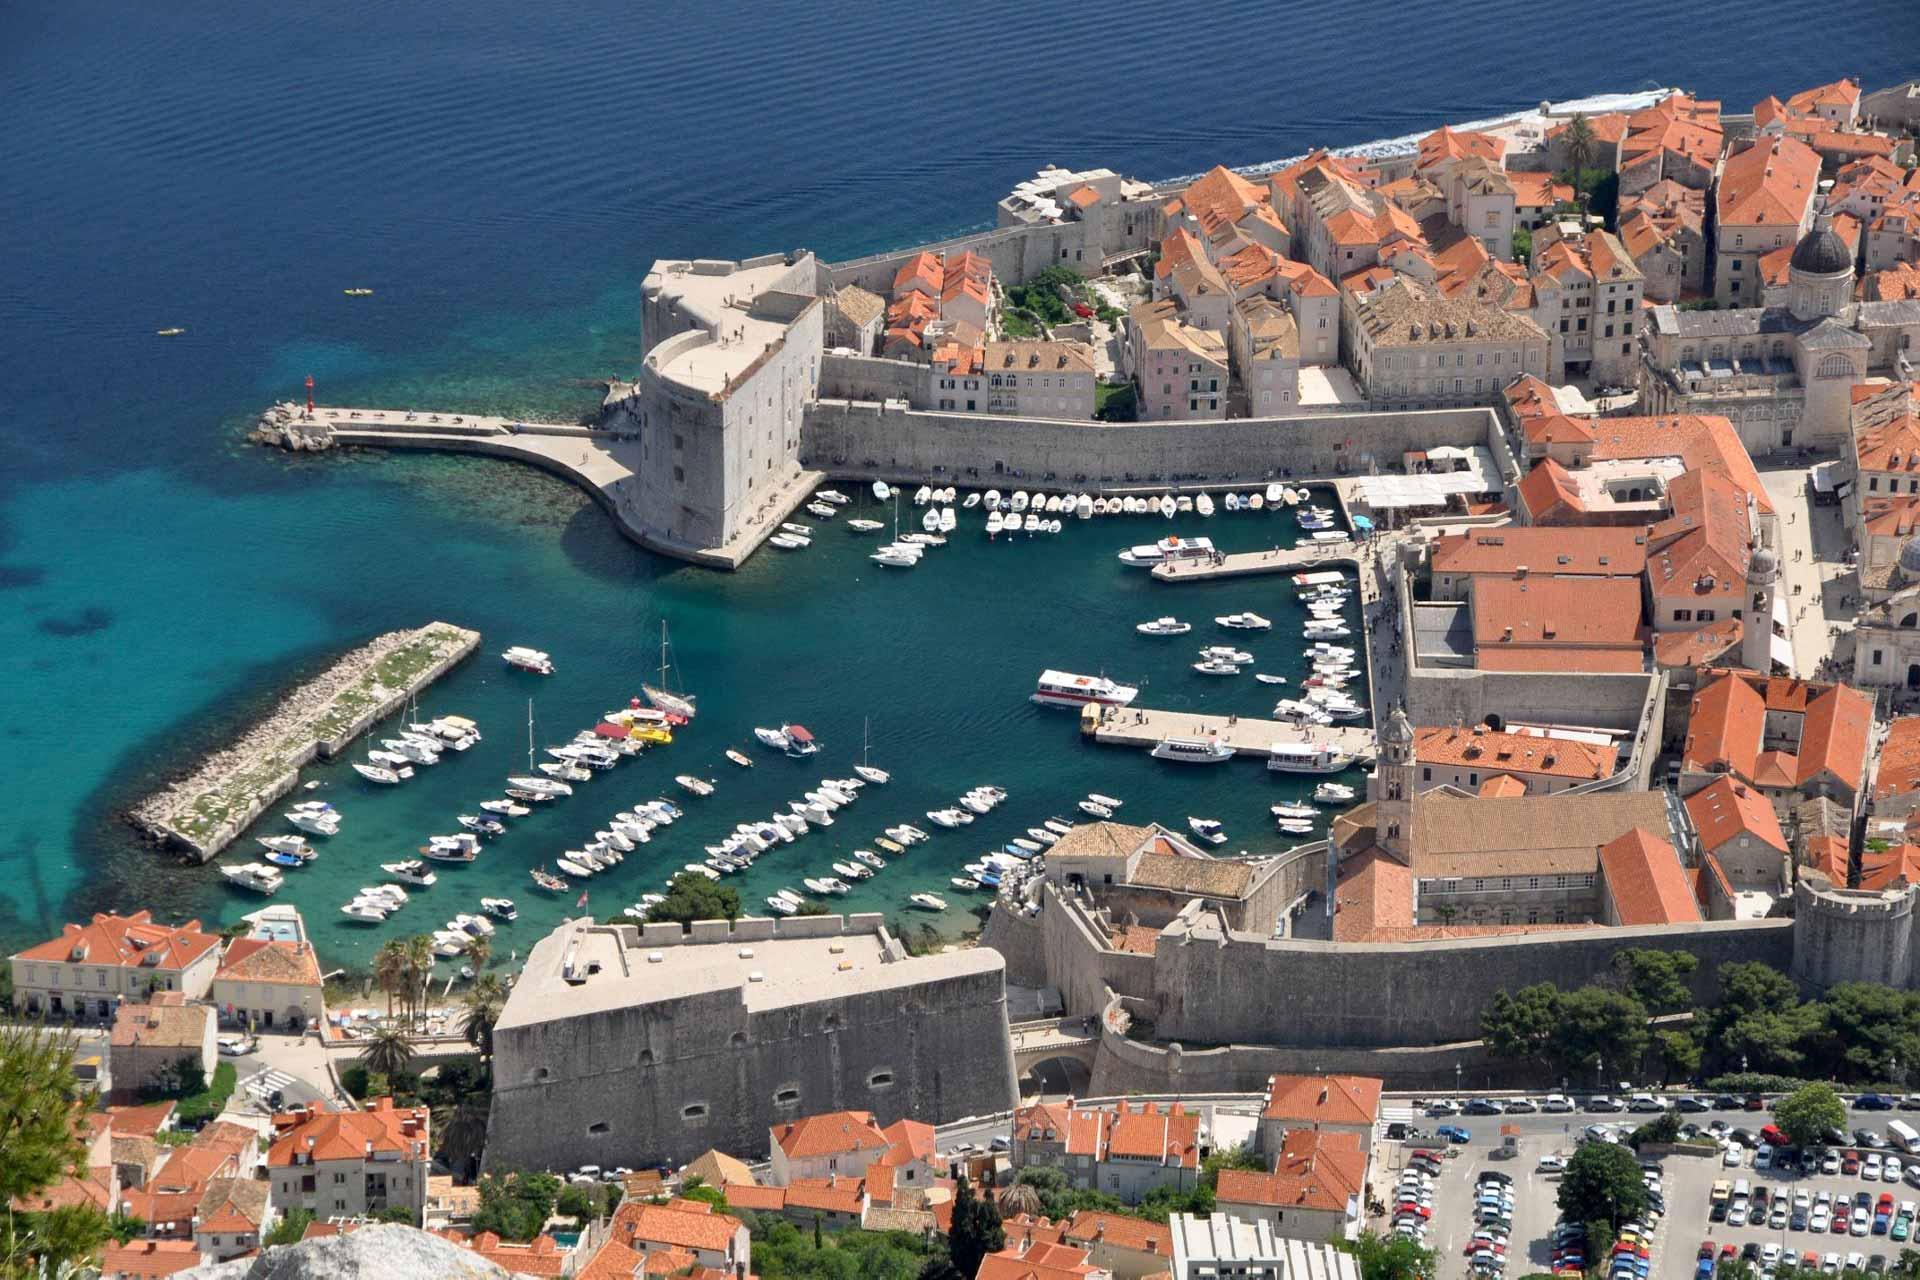 Aerial photo of Dubrovnik